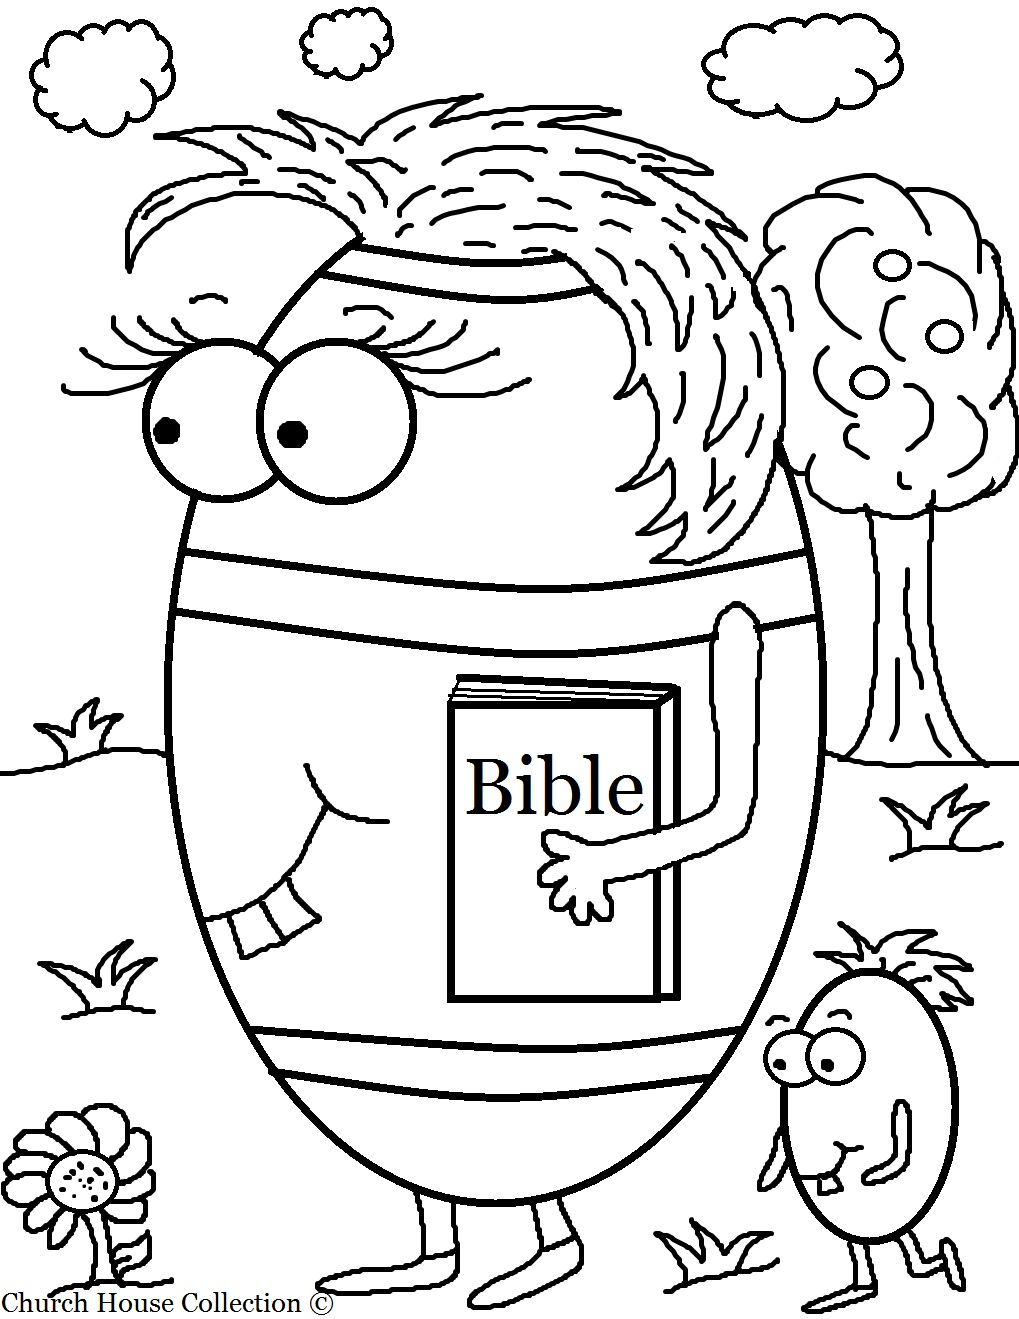 Coloring Pages Archives Whats in the Bible - free sunday school coloring pages